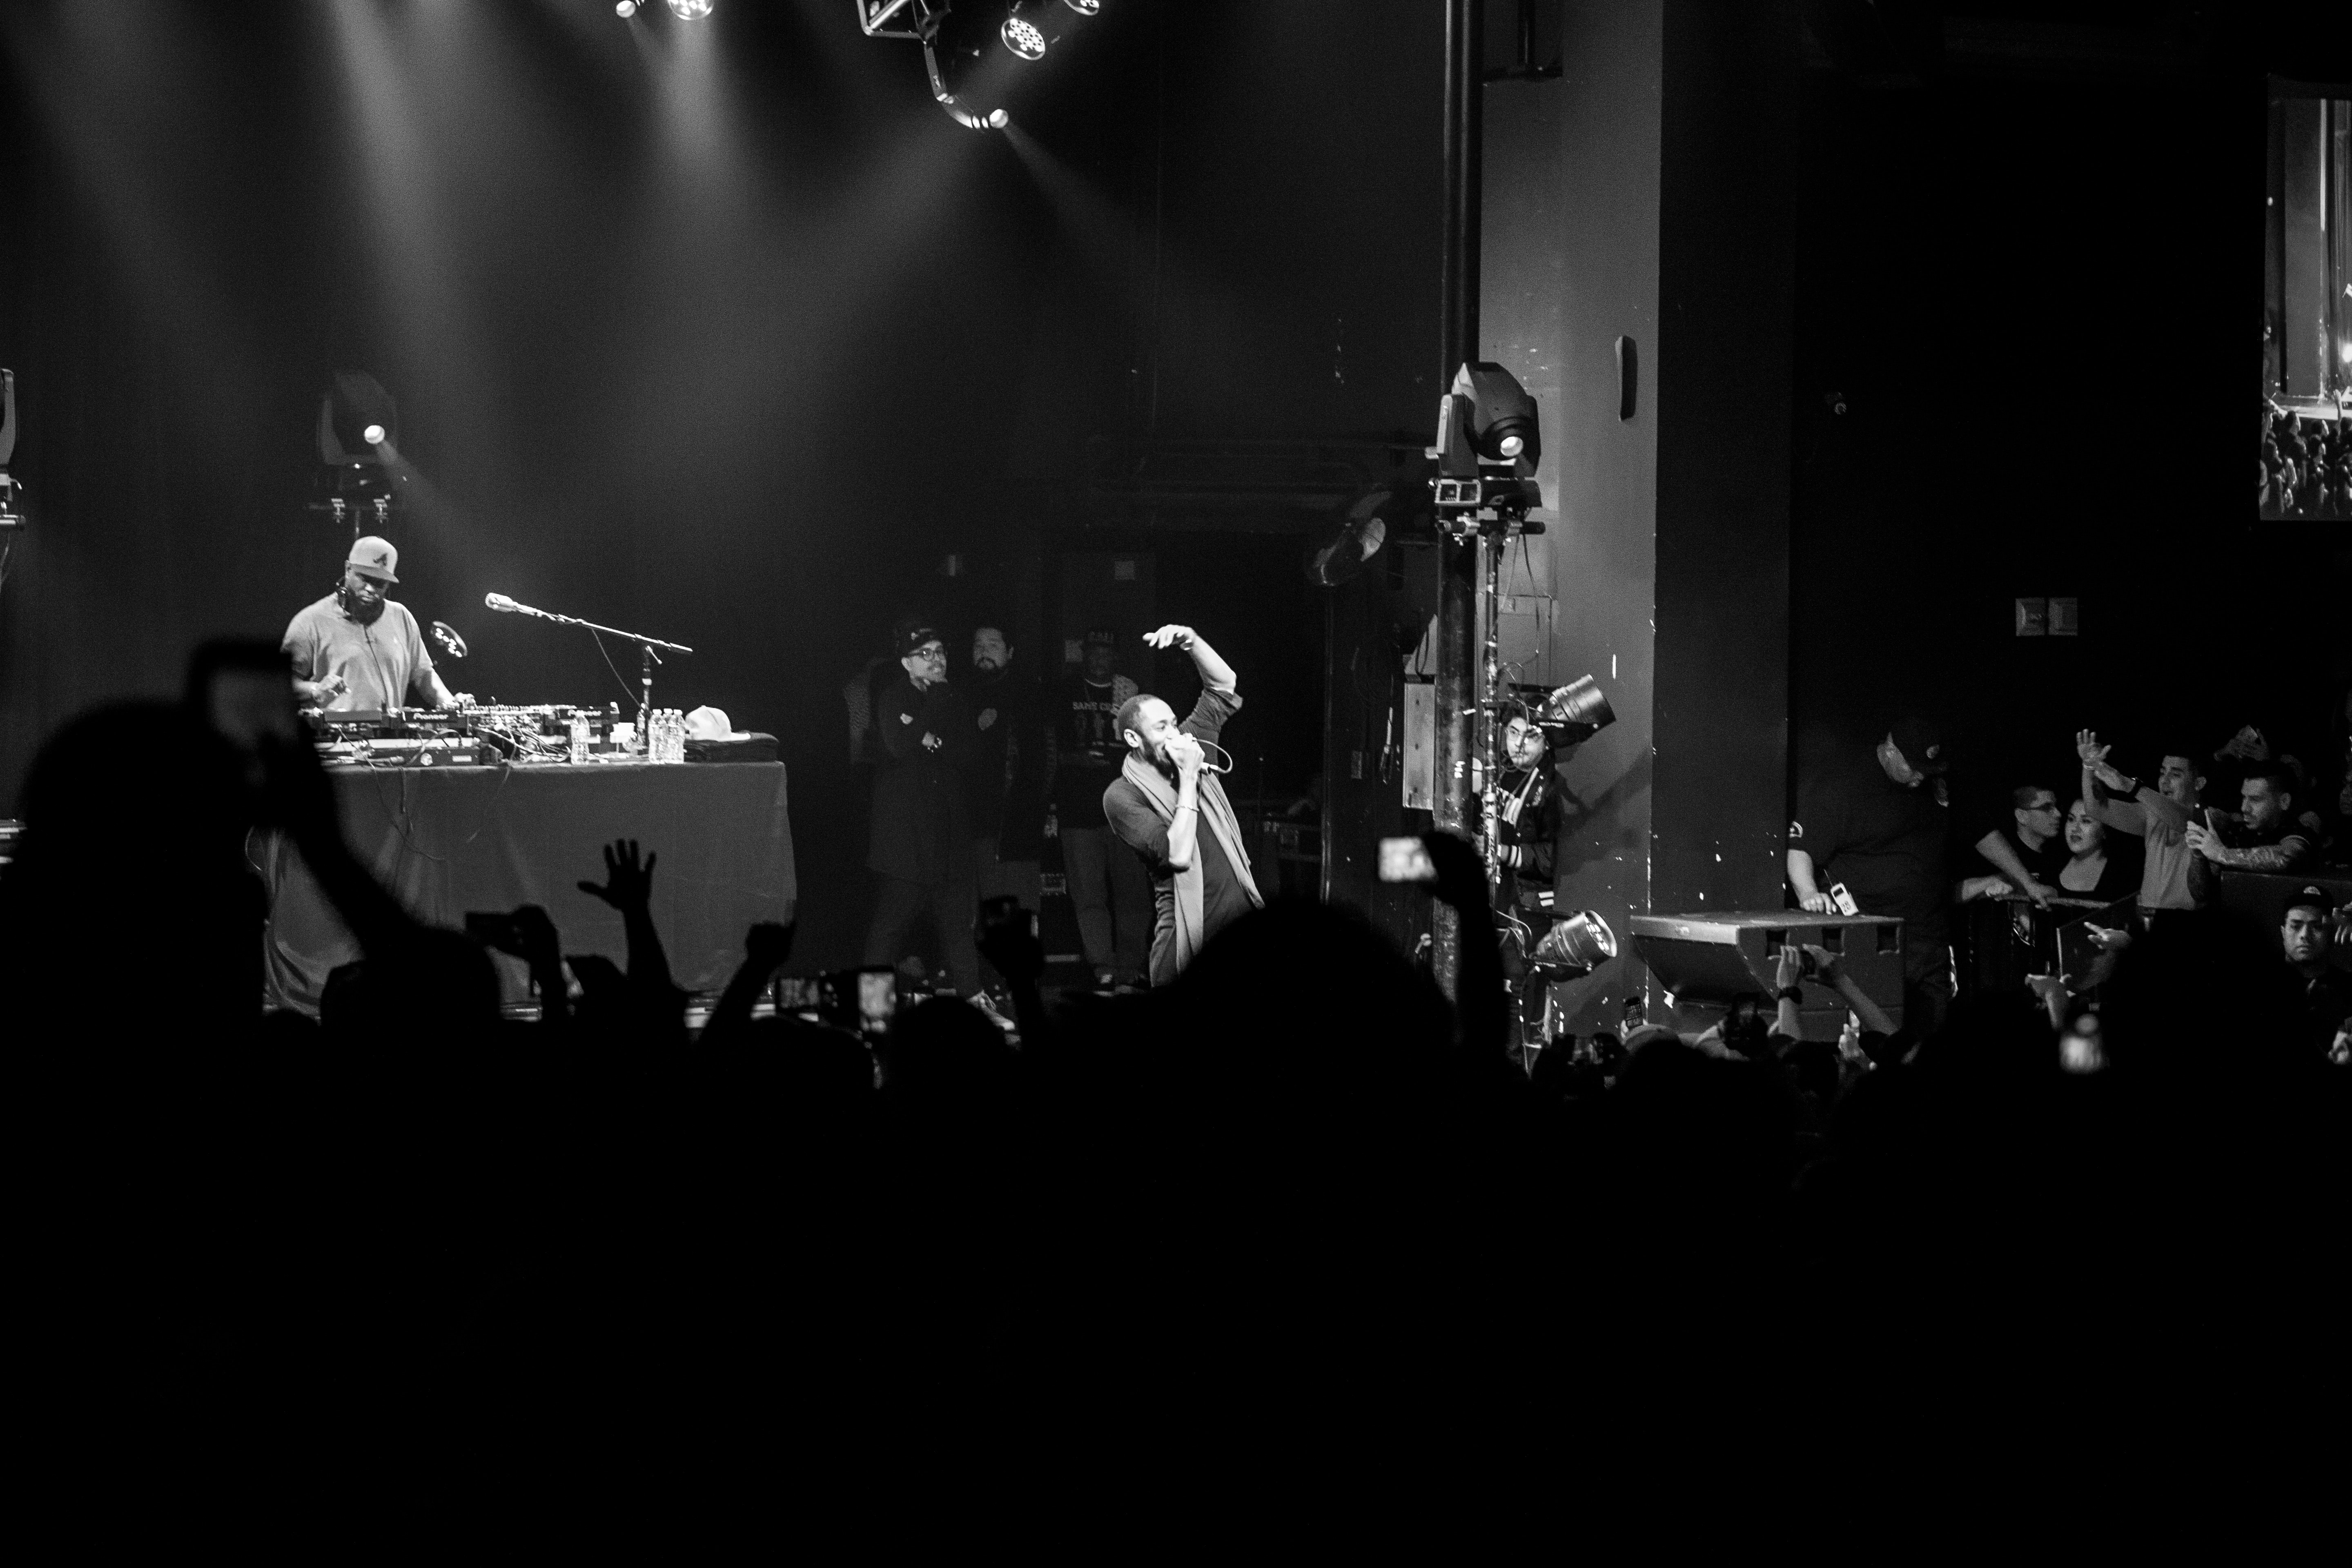 grayscale photo of a concert on the stage